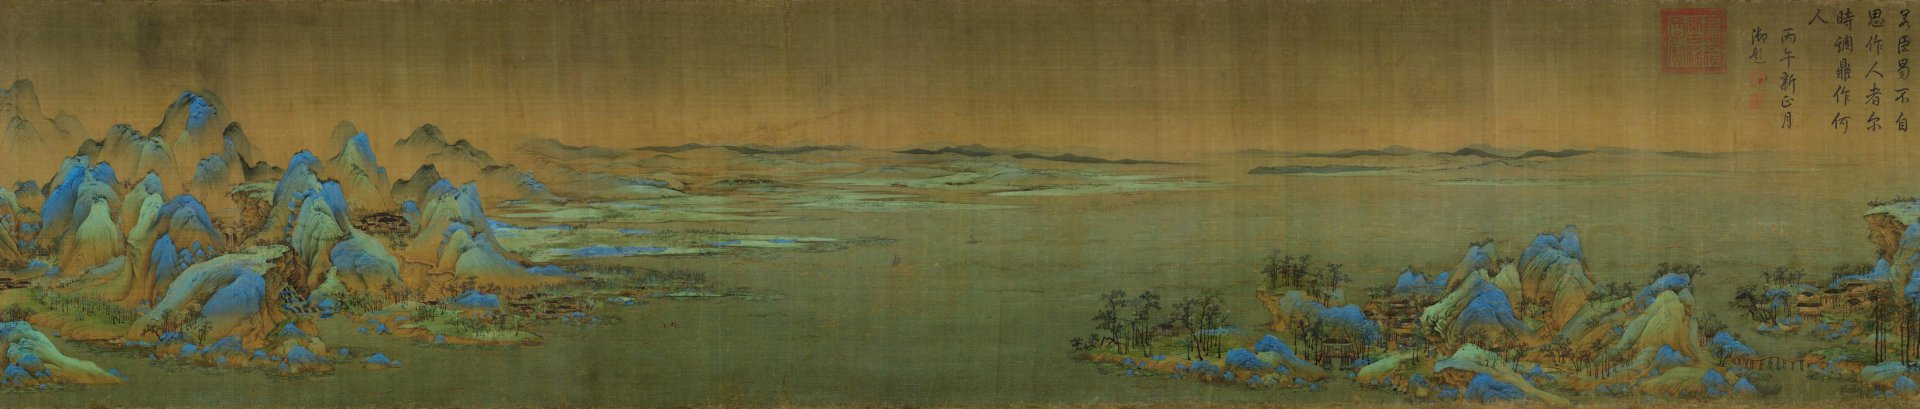 5.t1e_Wang_Ximeng._A_Thousand_Li_of_Rivers_and_Mountains._.jpg